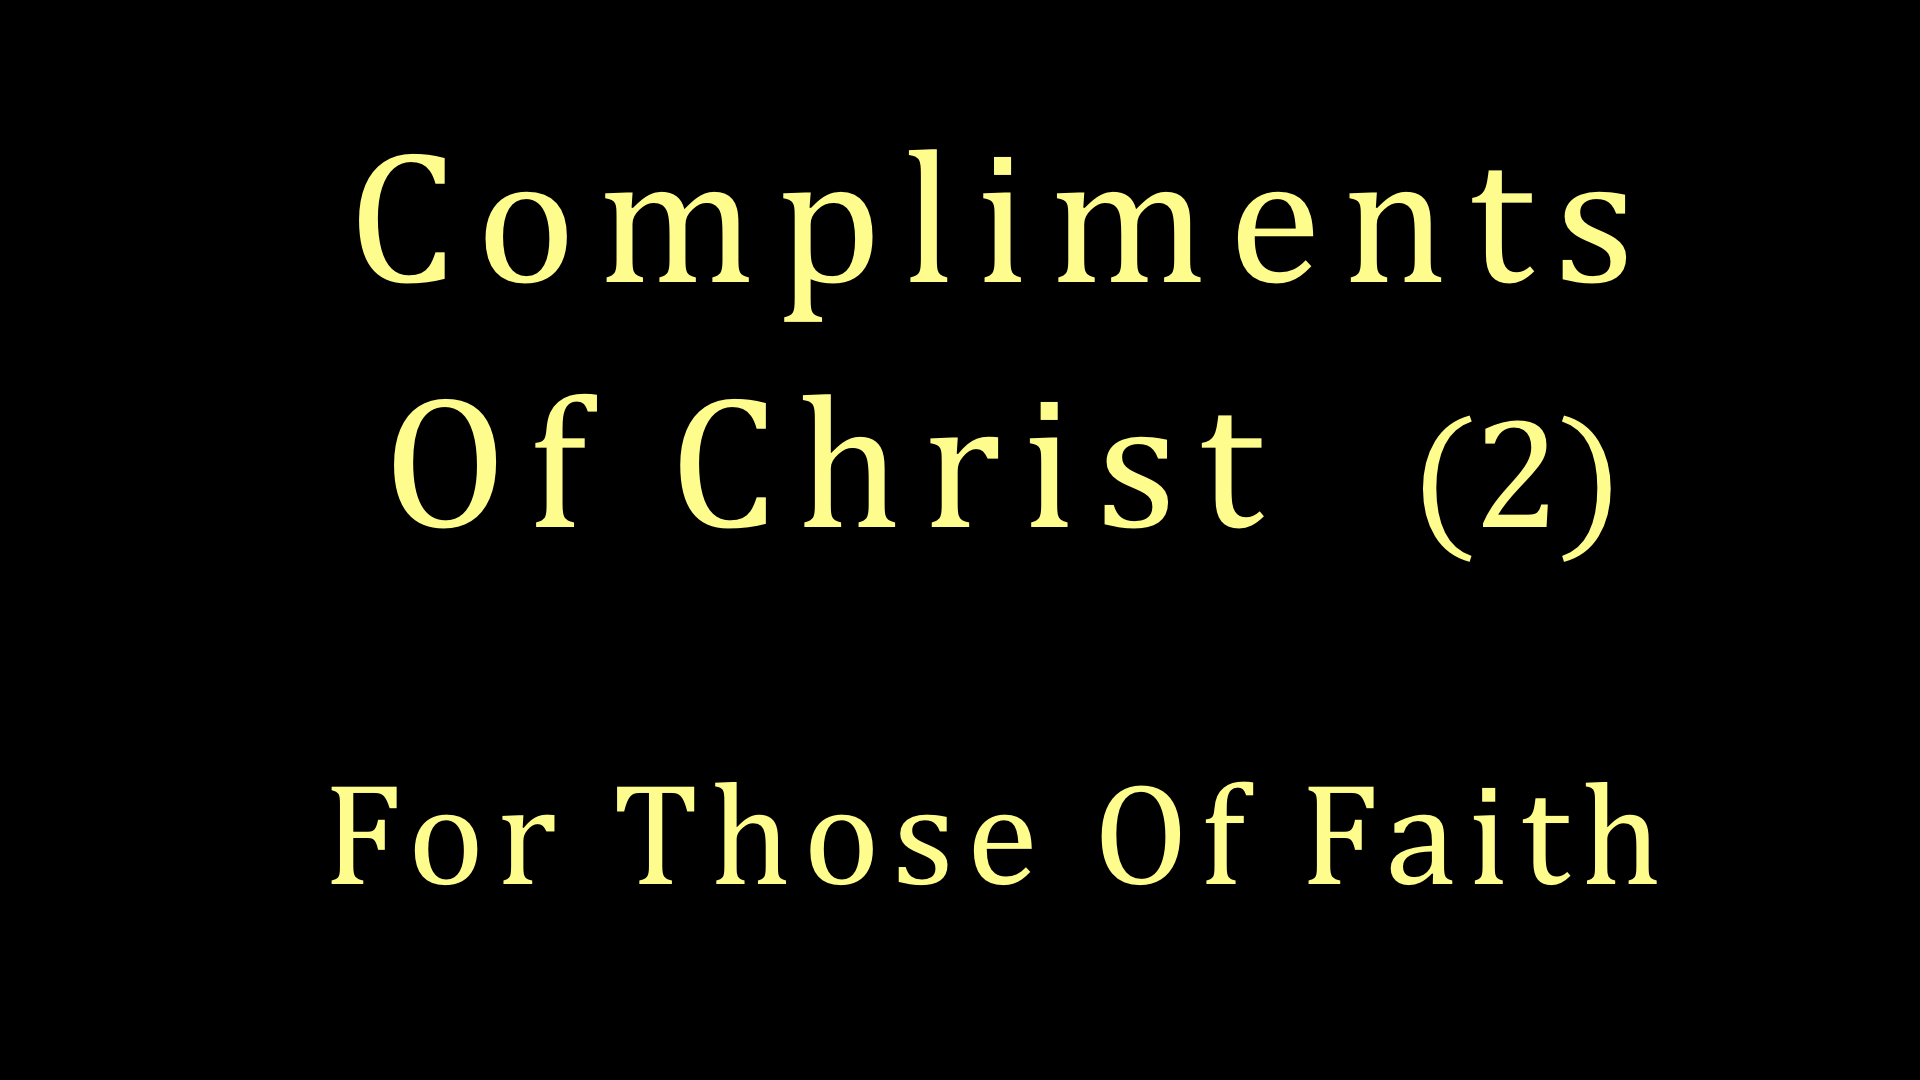 Compliments of Christ 2 - For Those Of Faith WIDE.jpeg